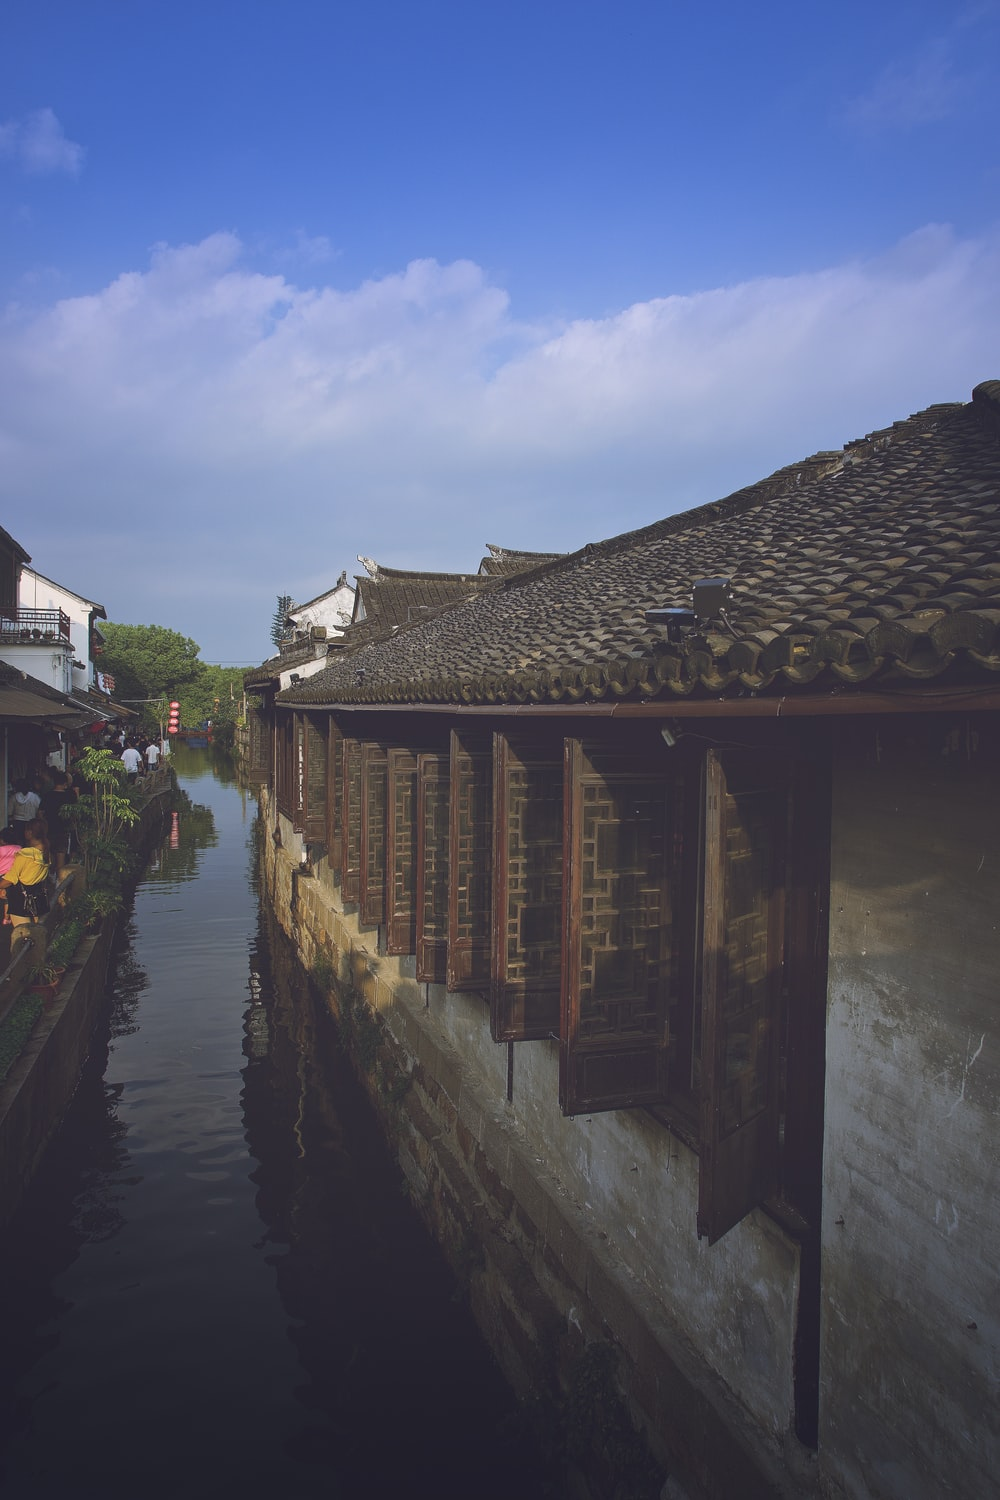 river between houses under white clouds